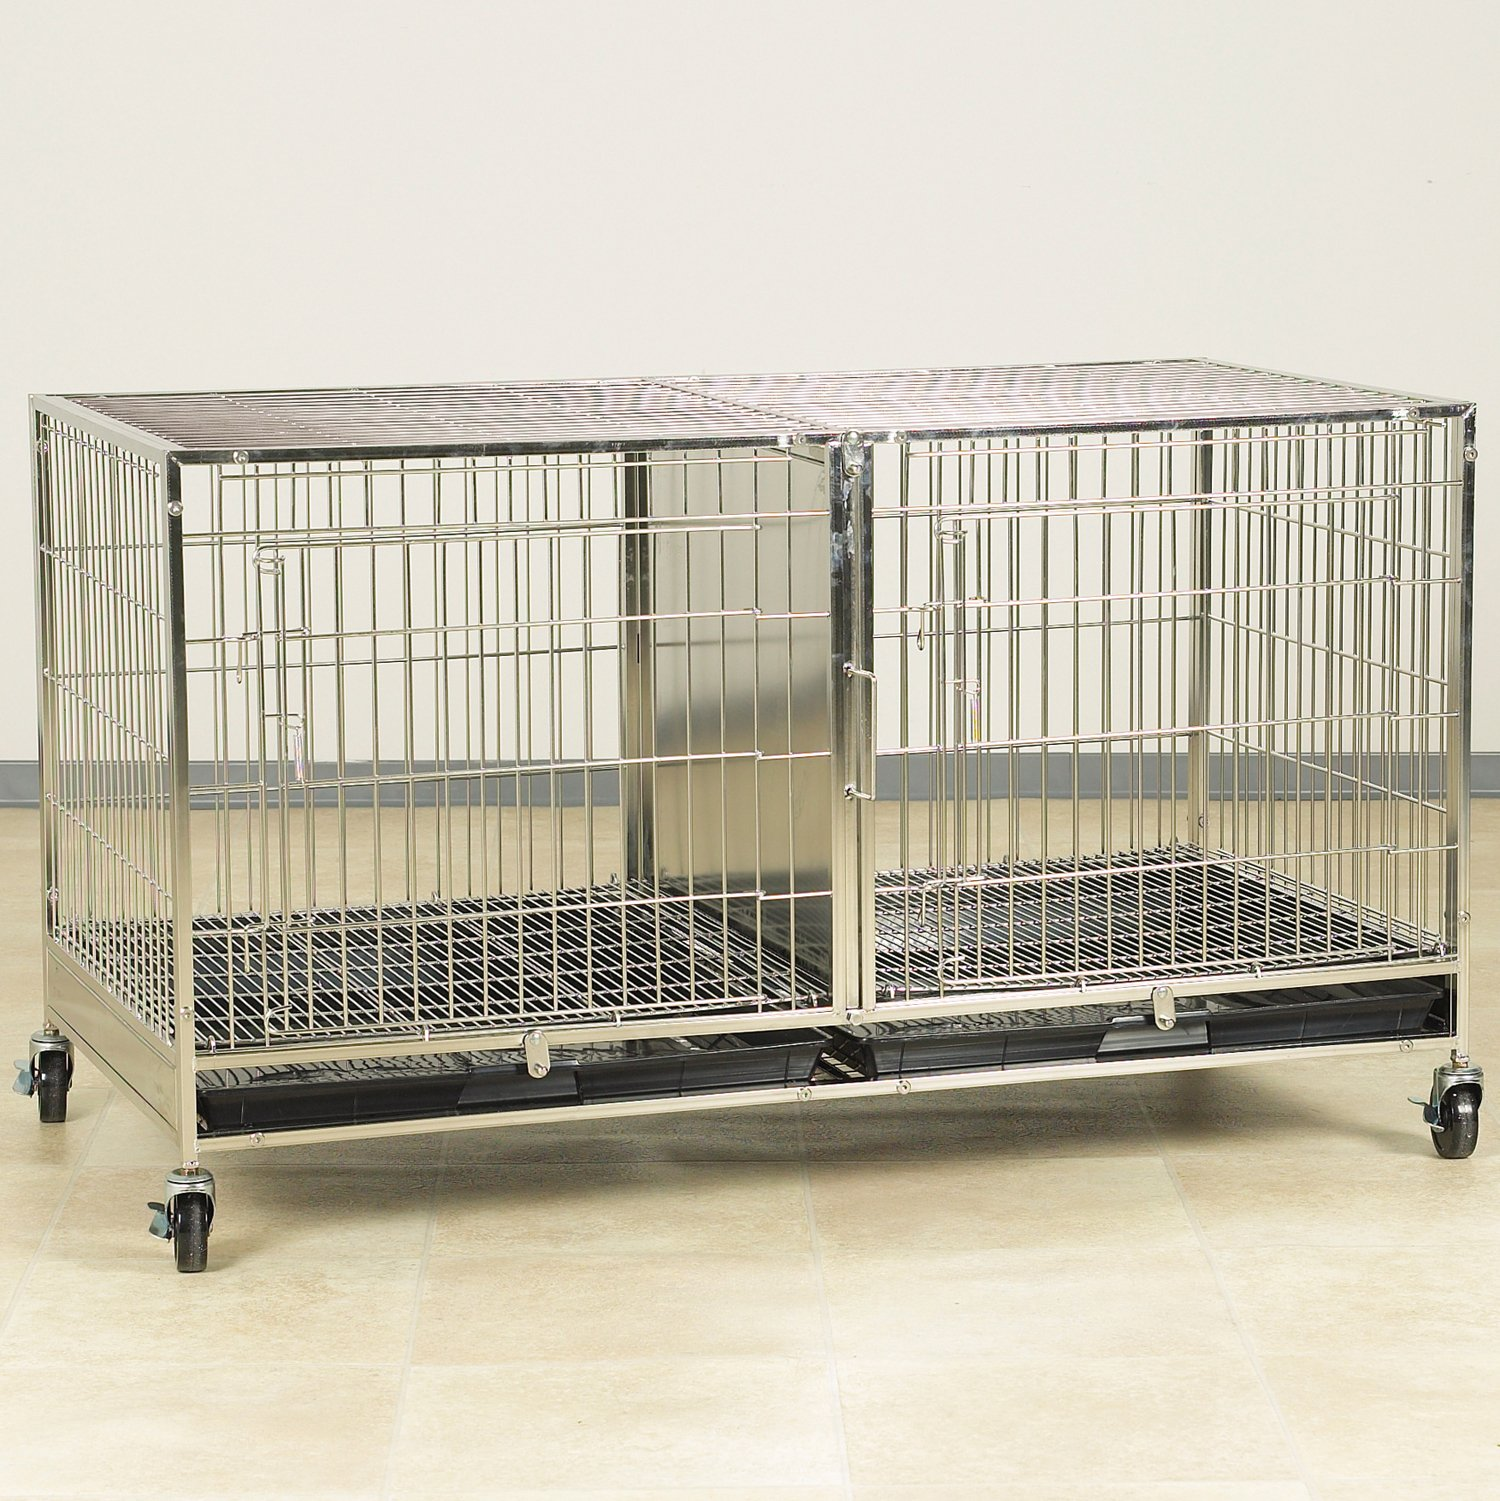 ProSelect Stainless Steel Modular Cage with Plastic Tray by Proselect (PRPQC)